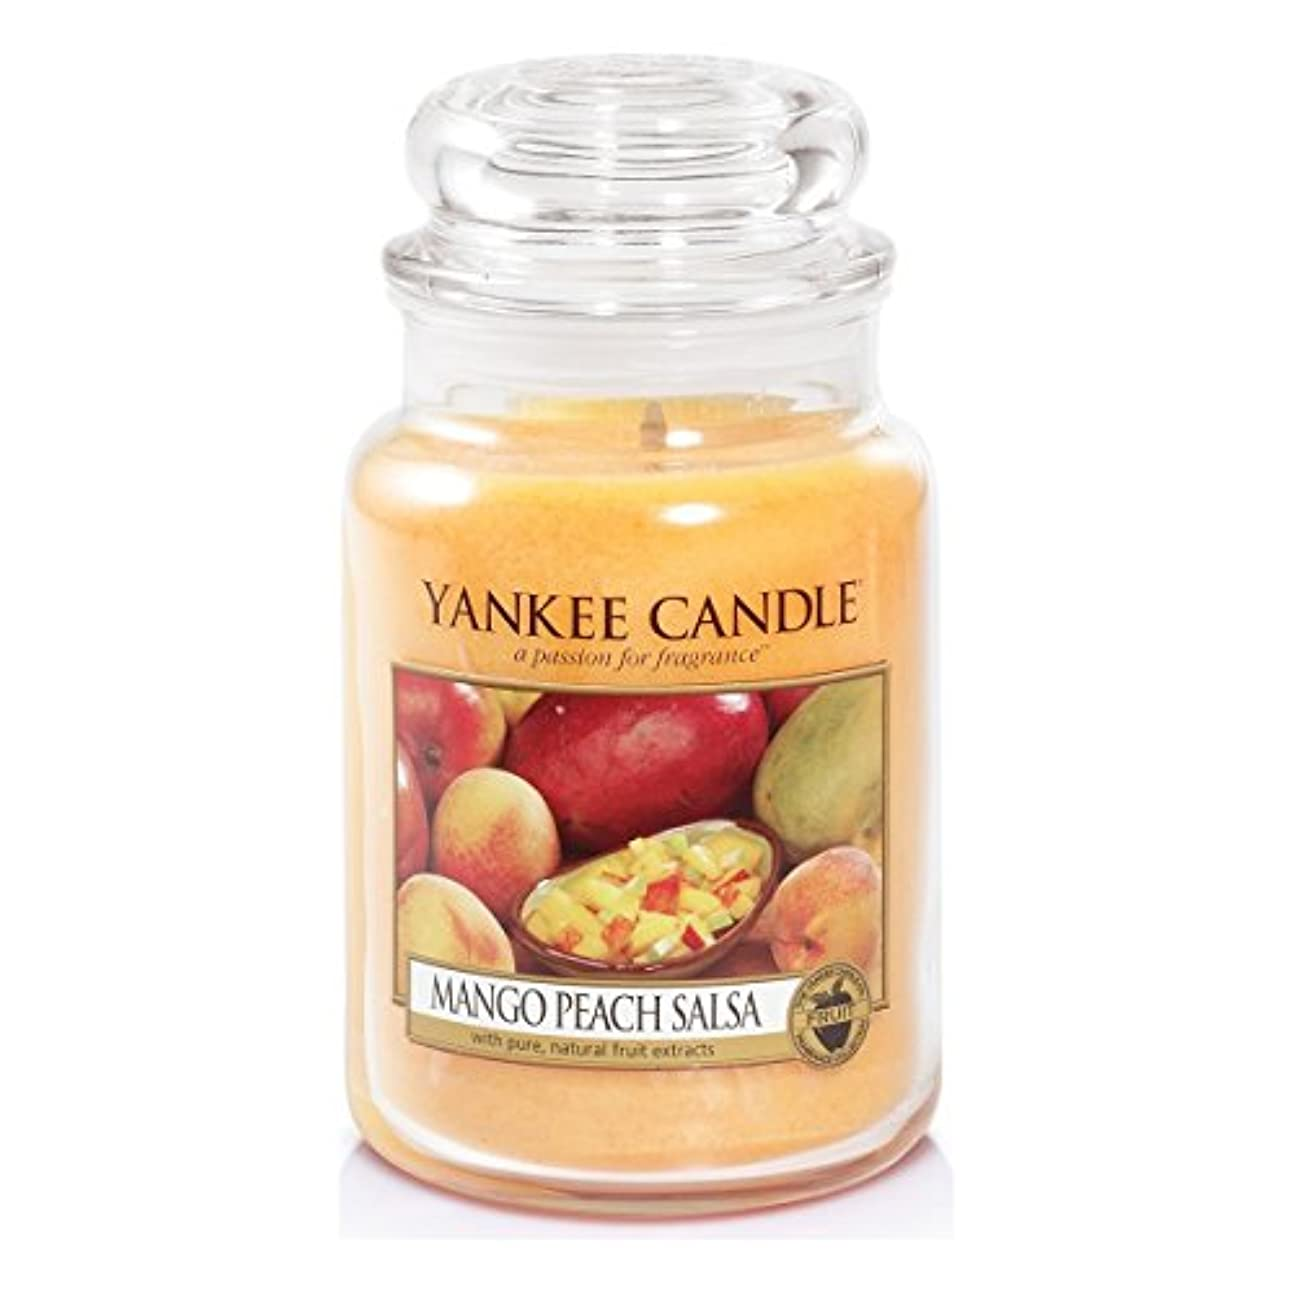 以前は郊外に付けるYankee Candle Large Jar Candle, Mango Peach Salsa by Yankee Candle